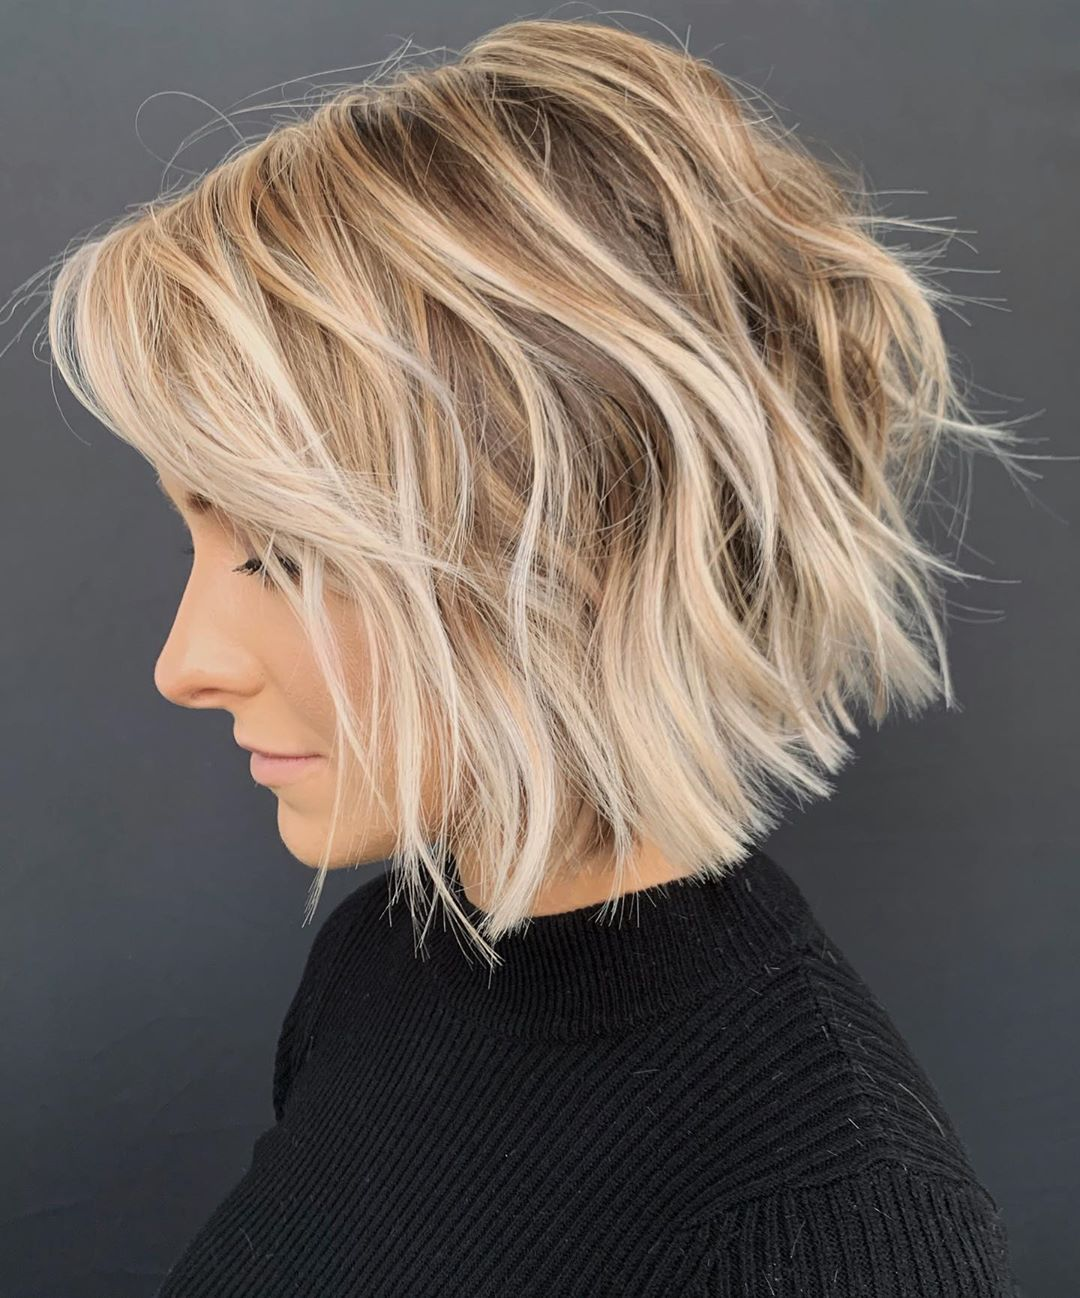 11 Newest Haircut Ideas and Haircut Trends for 11 - Hair Adviser